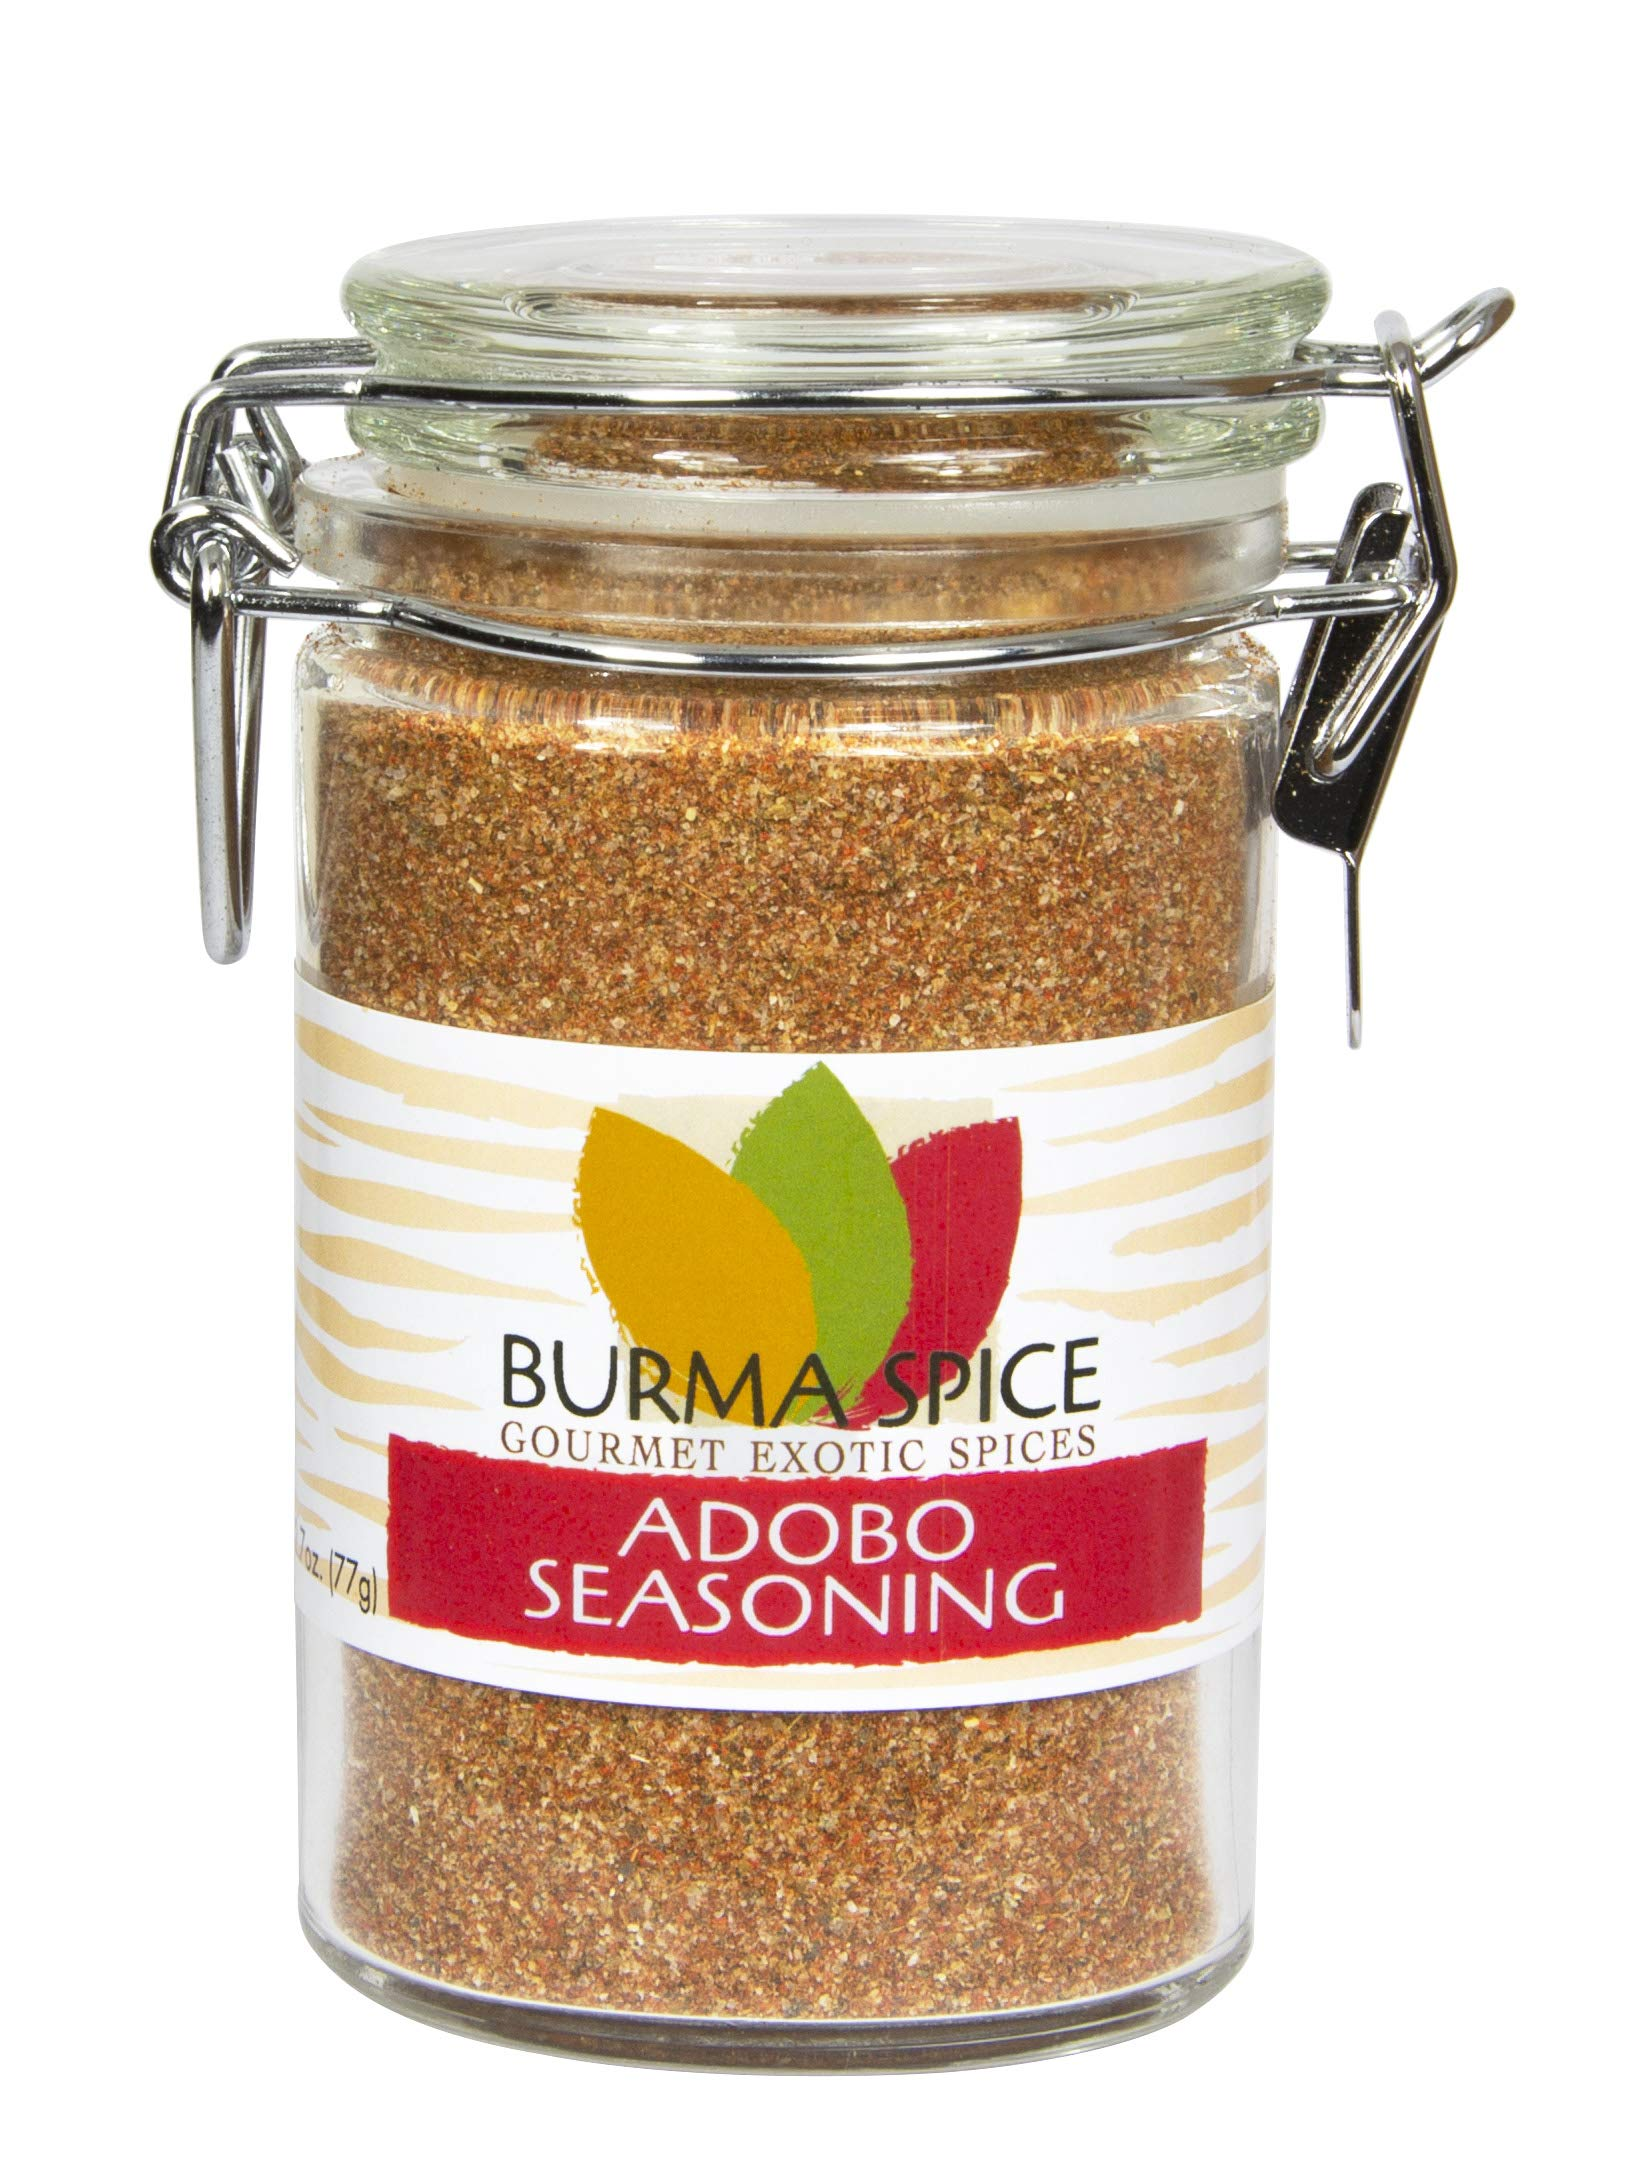 Adobo Seasoning Spice Blend (2.7oz.)